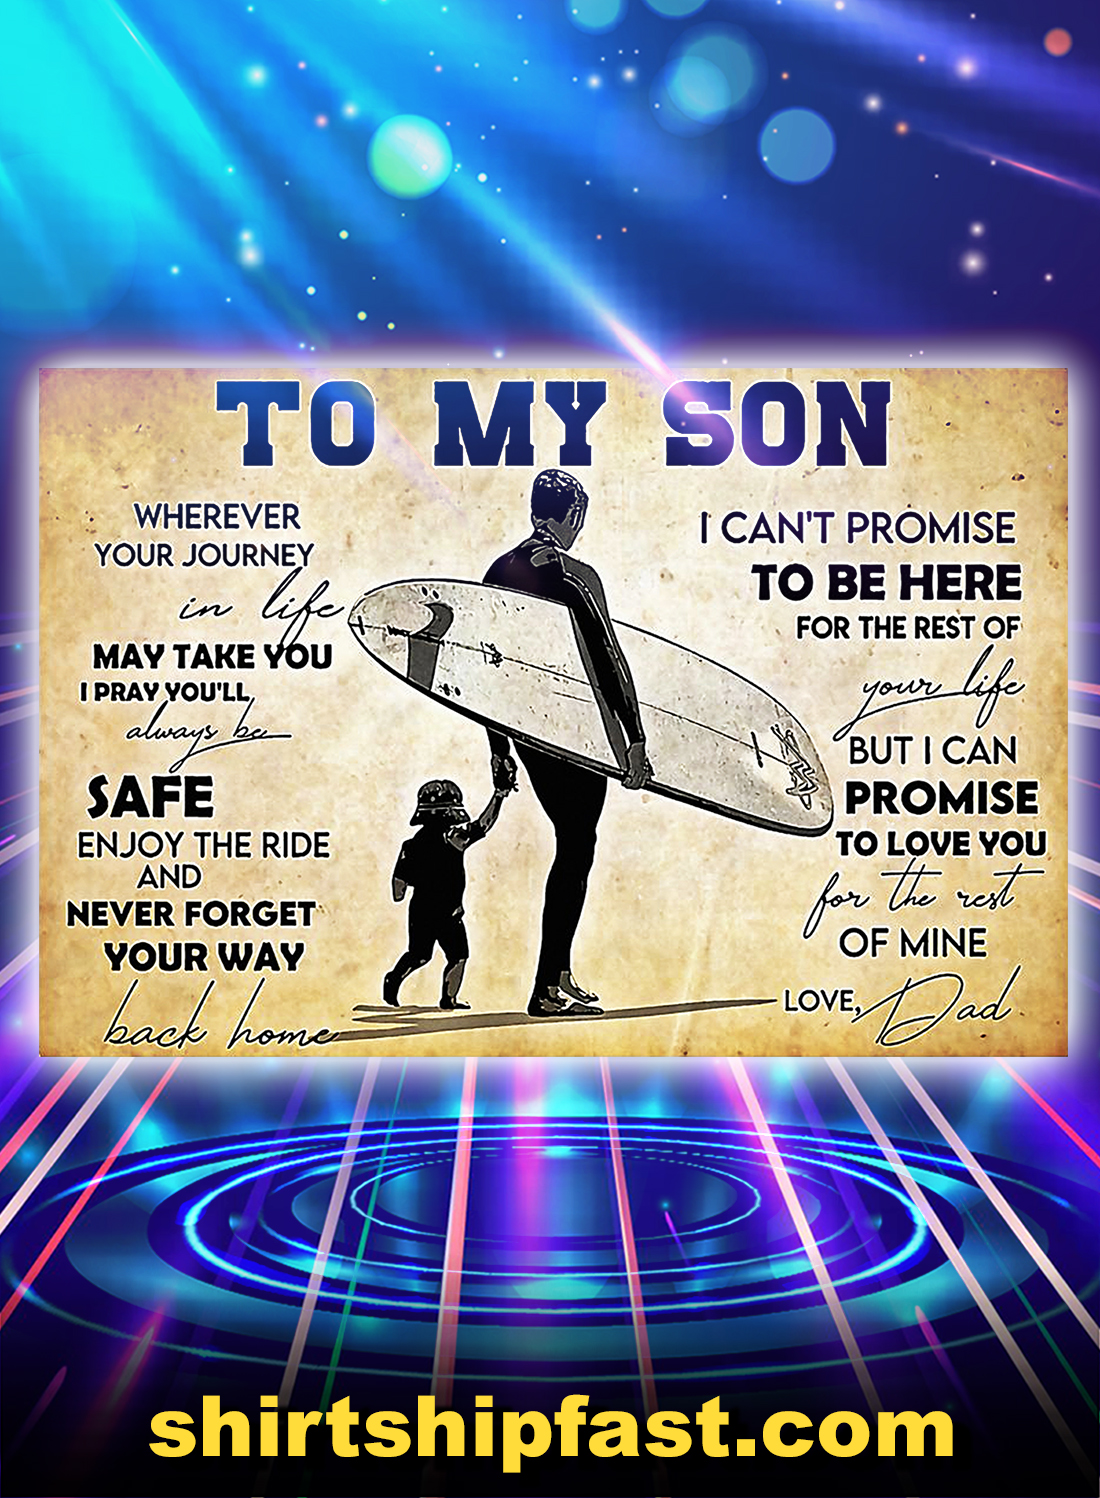 Surfing to my son love dad poster - A4